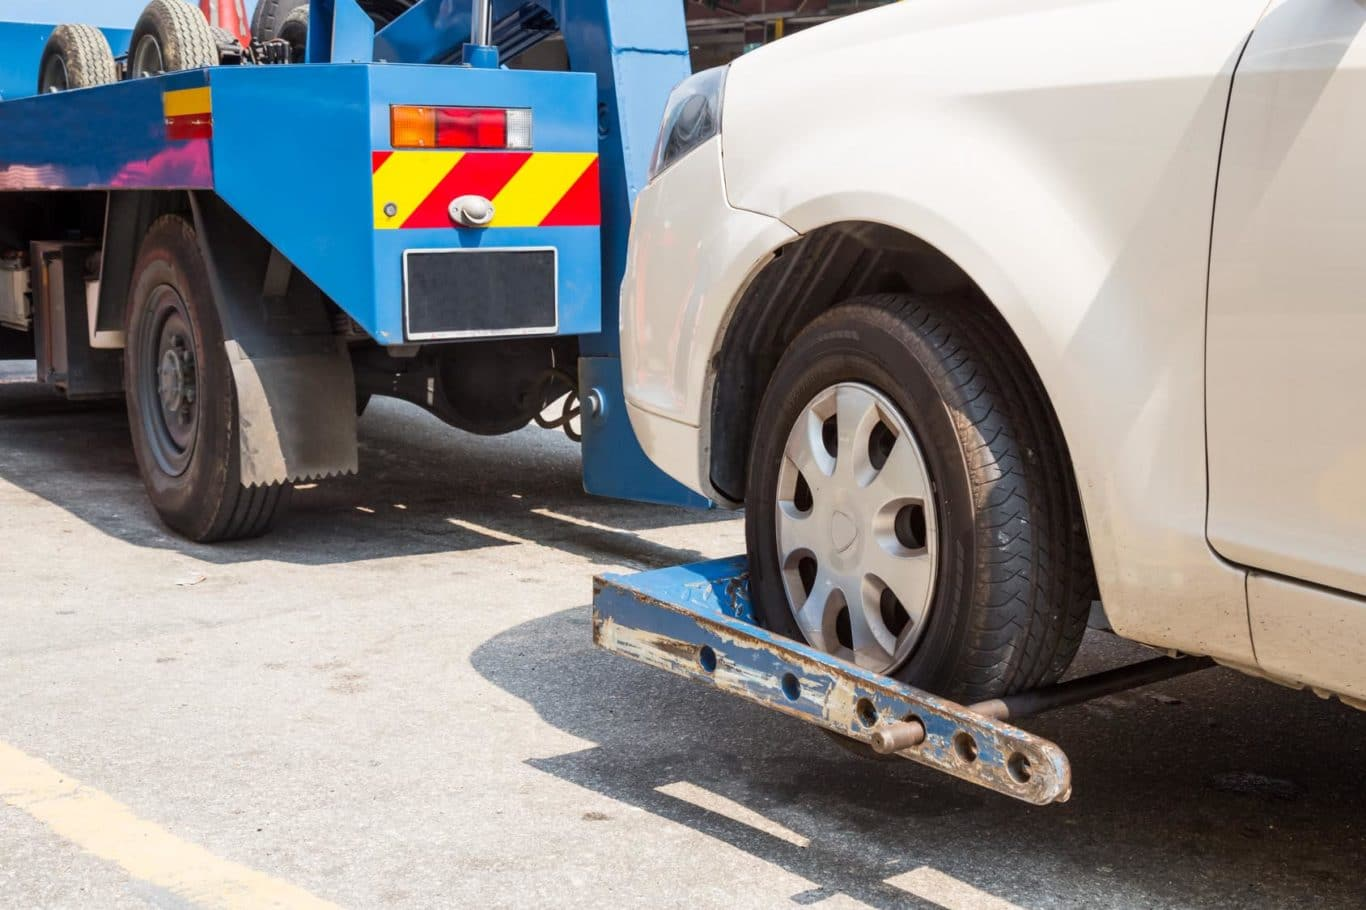 Dartry expert Towing And Recovery Dublin services